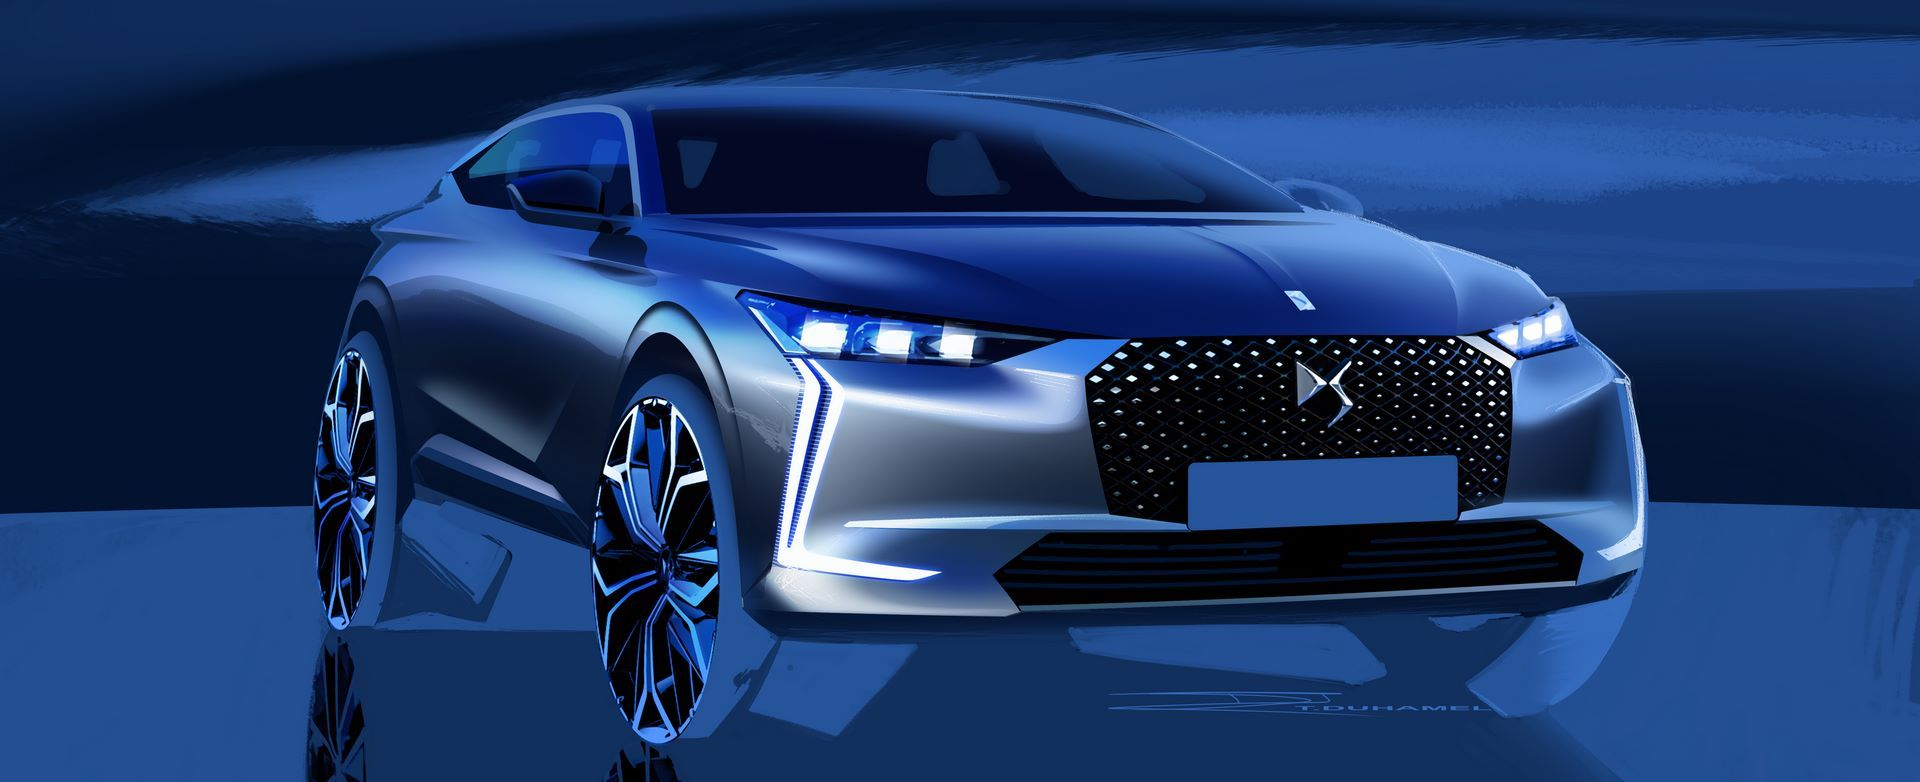 DS4-and-DS4-Cross-2021-100